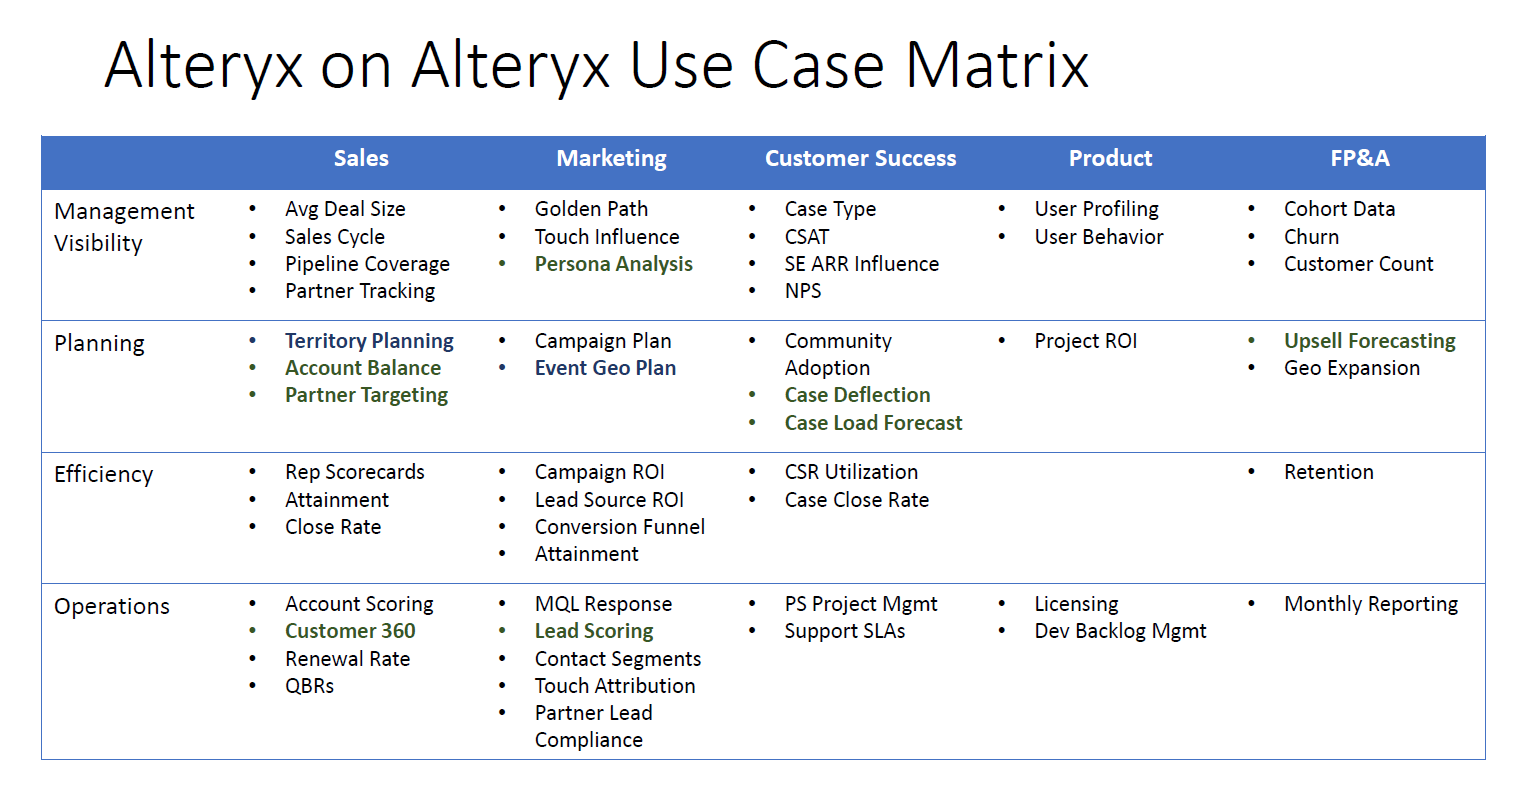 Alteryx on Alteryx Use Case Matrix.png